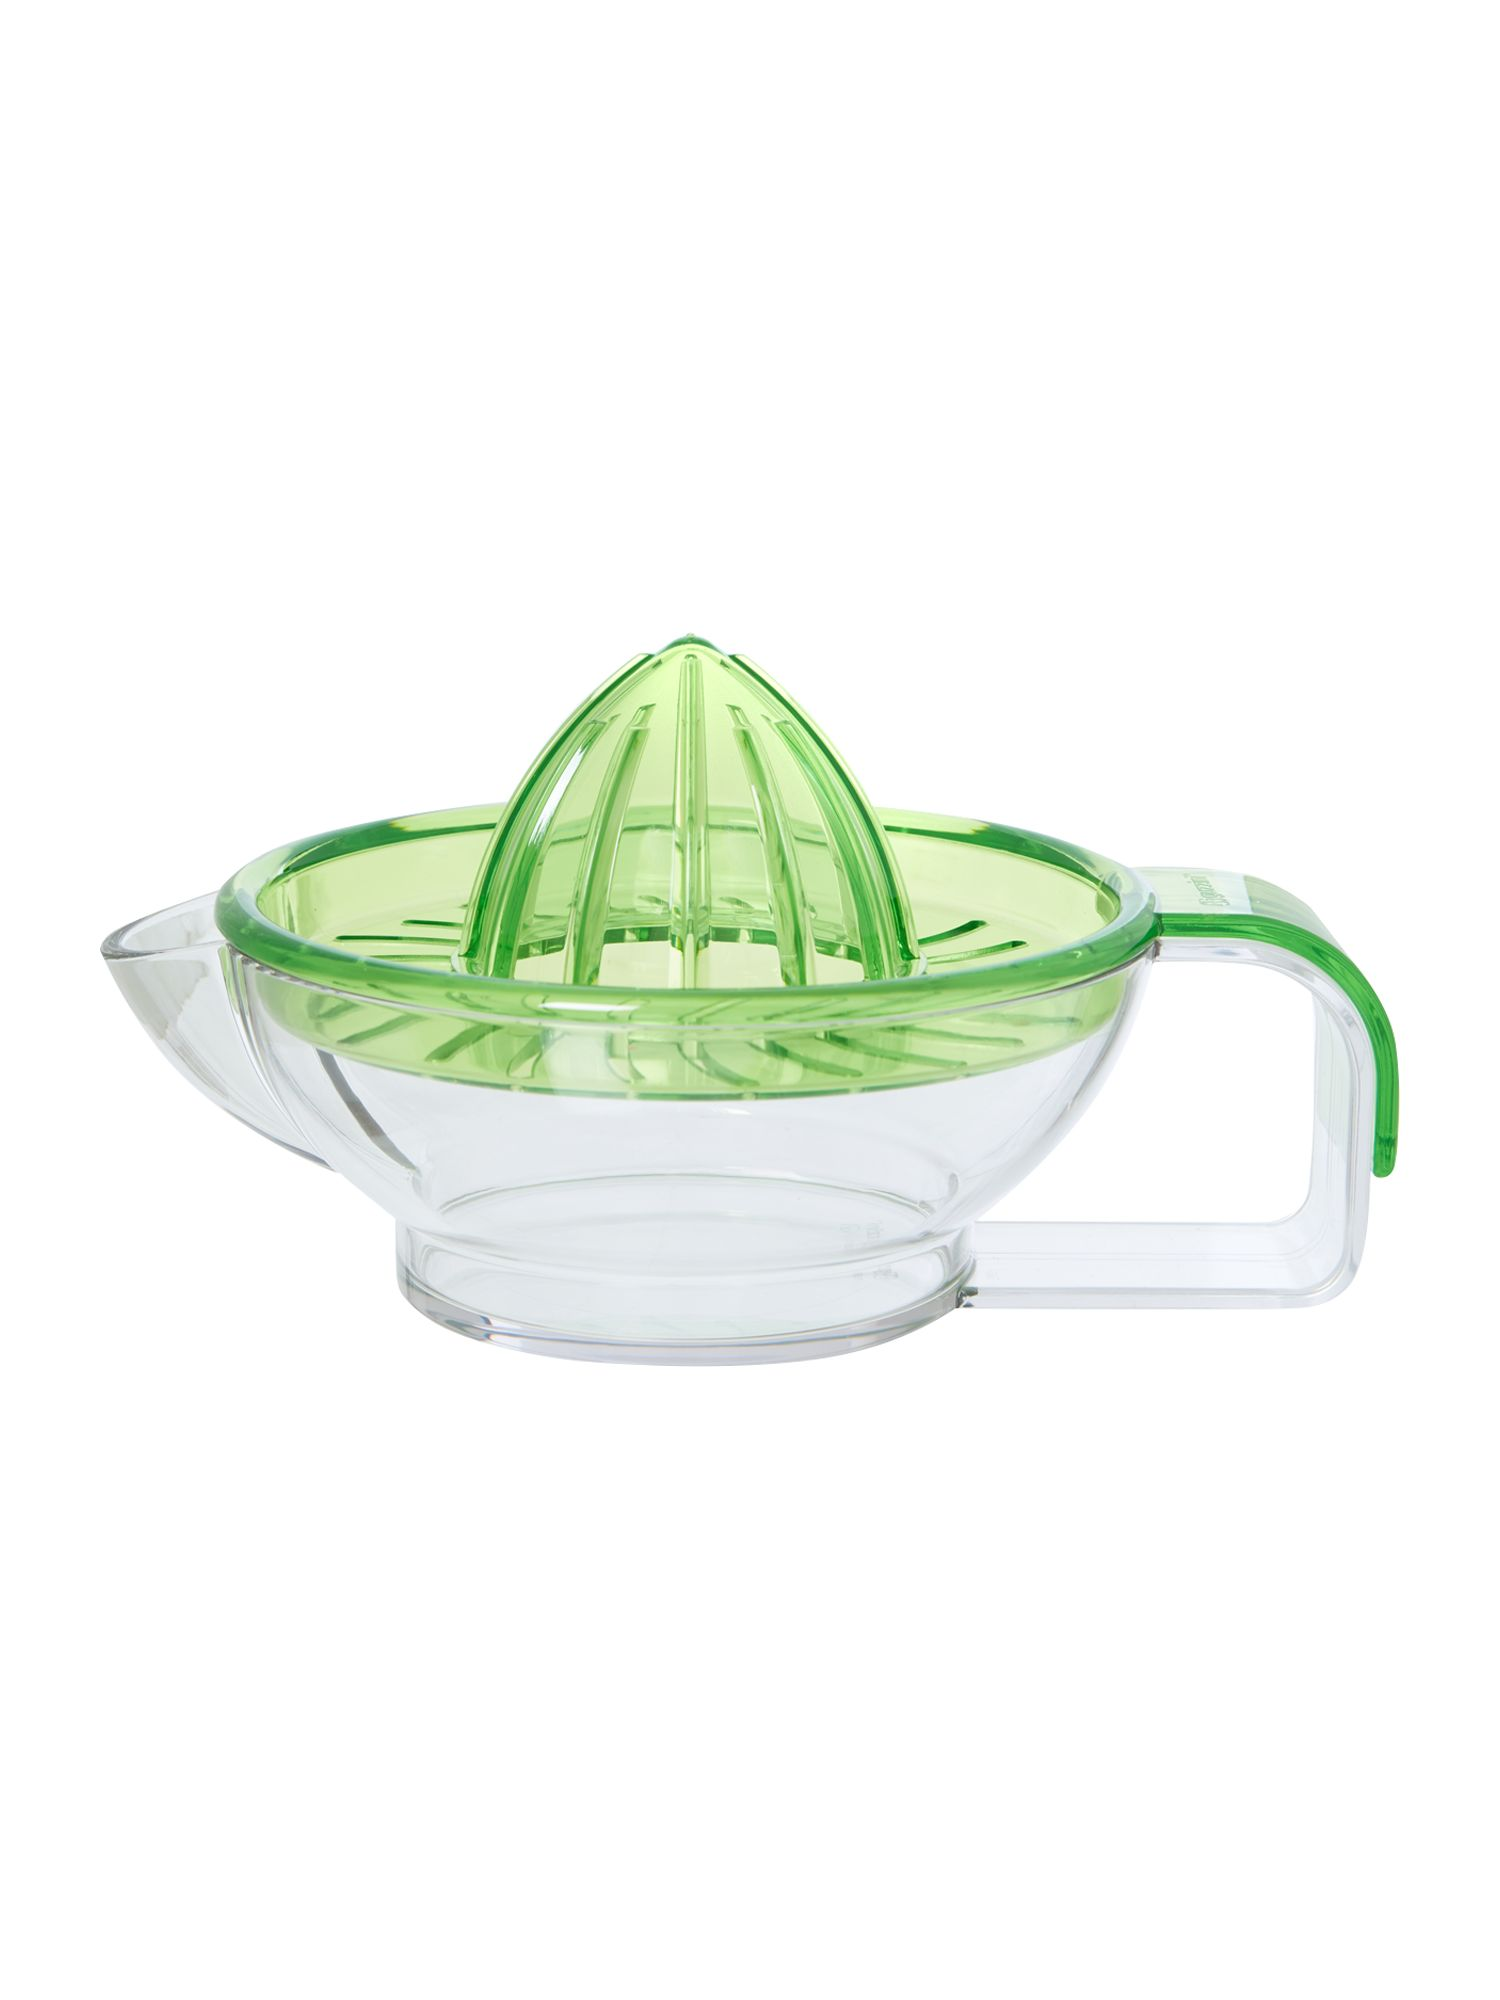 Citrus Juicer Latina Green